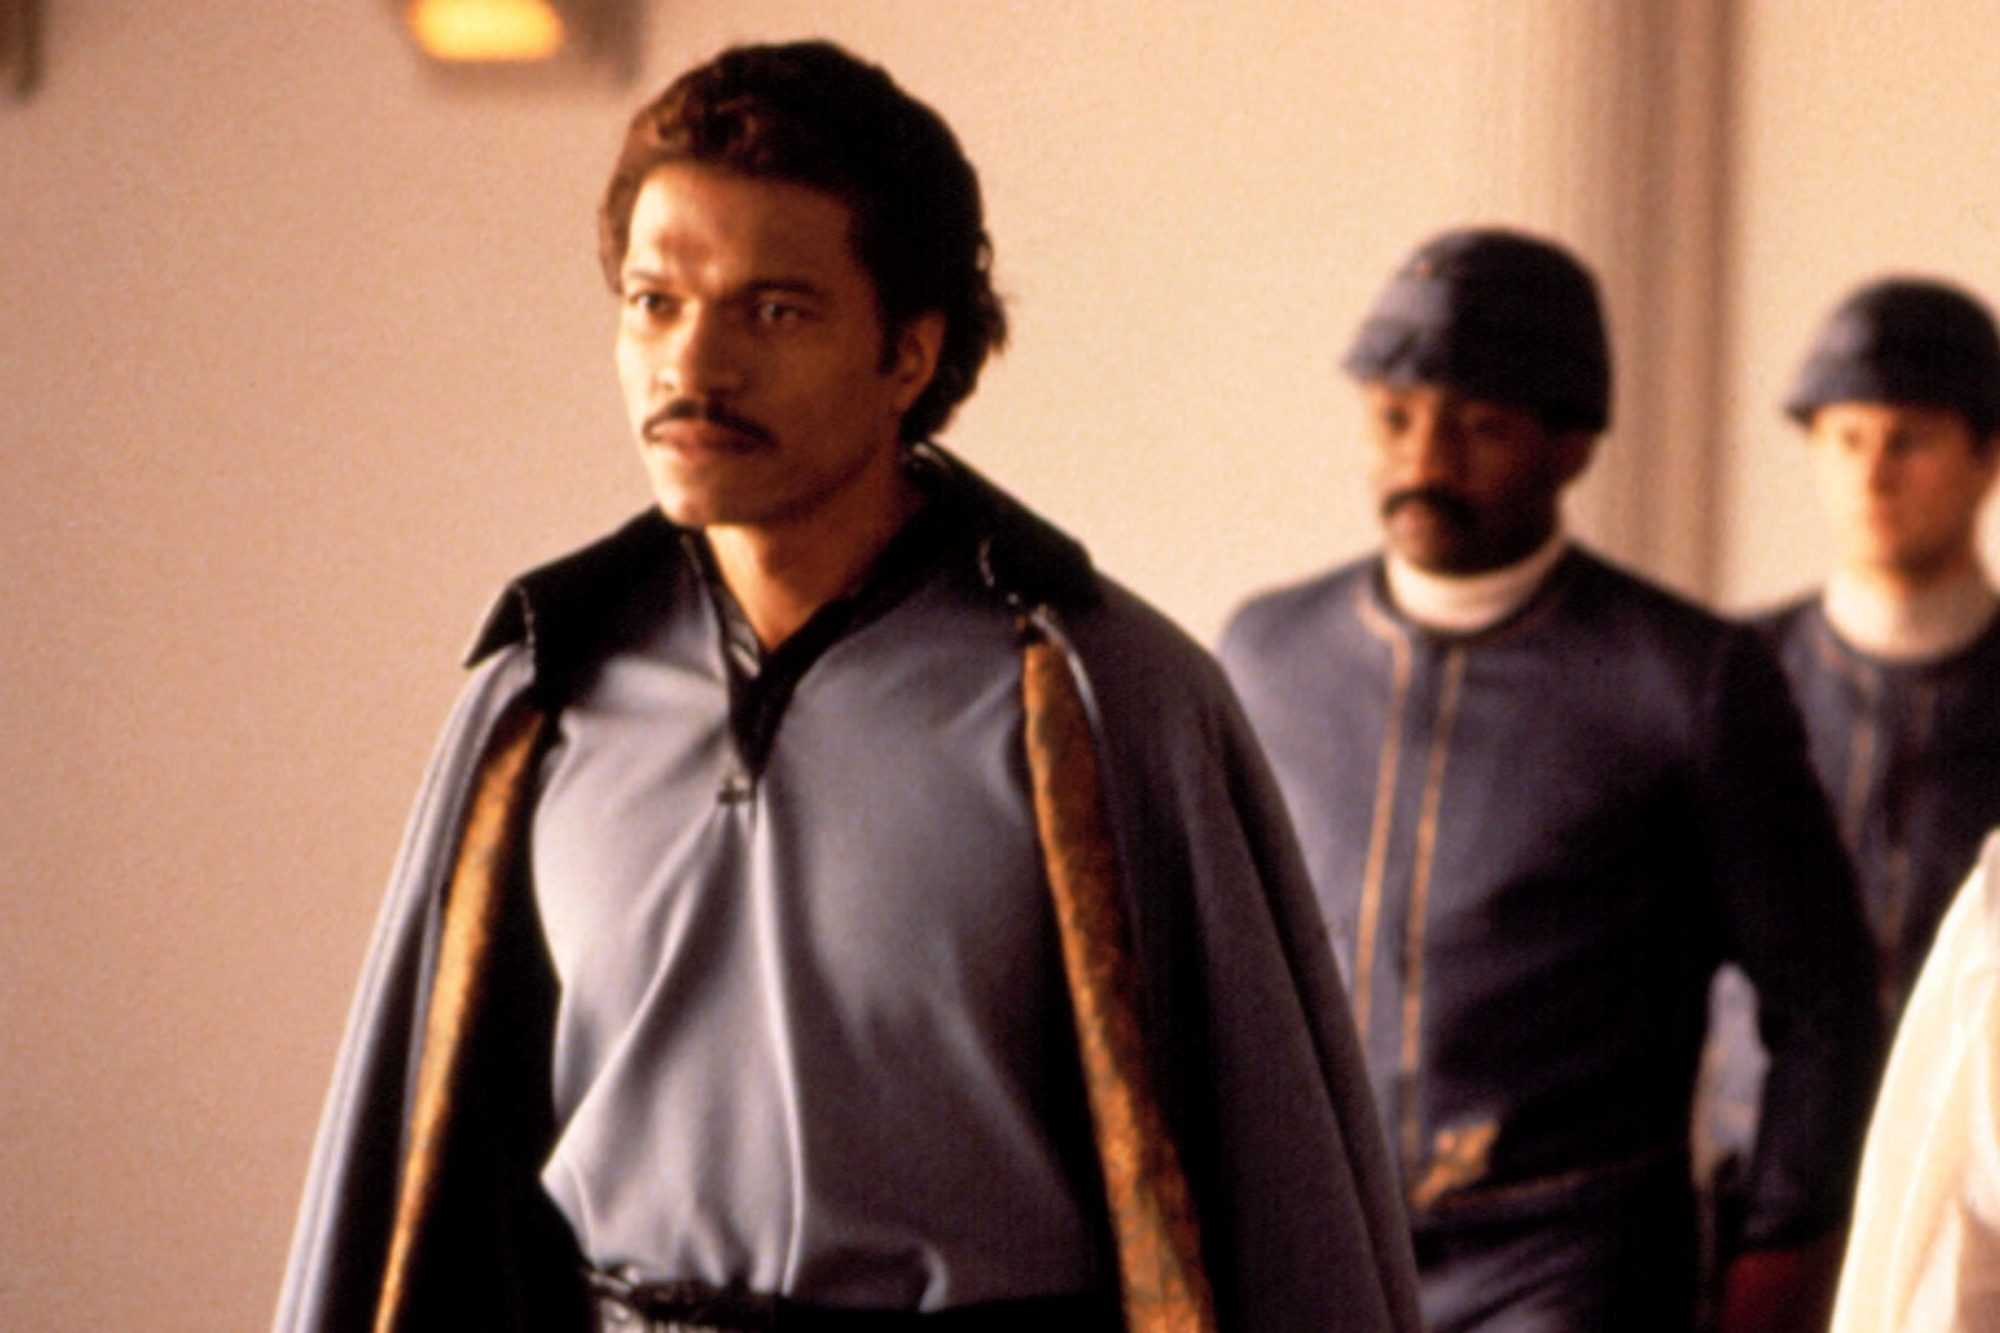 STAR WARS: EPISODE V - THE EMPIRE STRIKES BACK, Billy Dee Williams, 1980